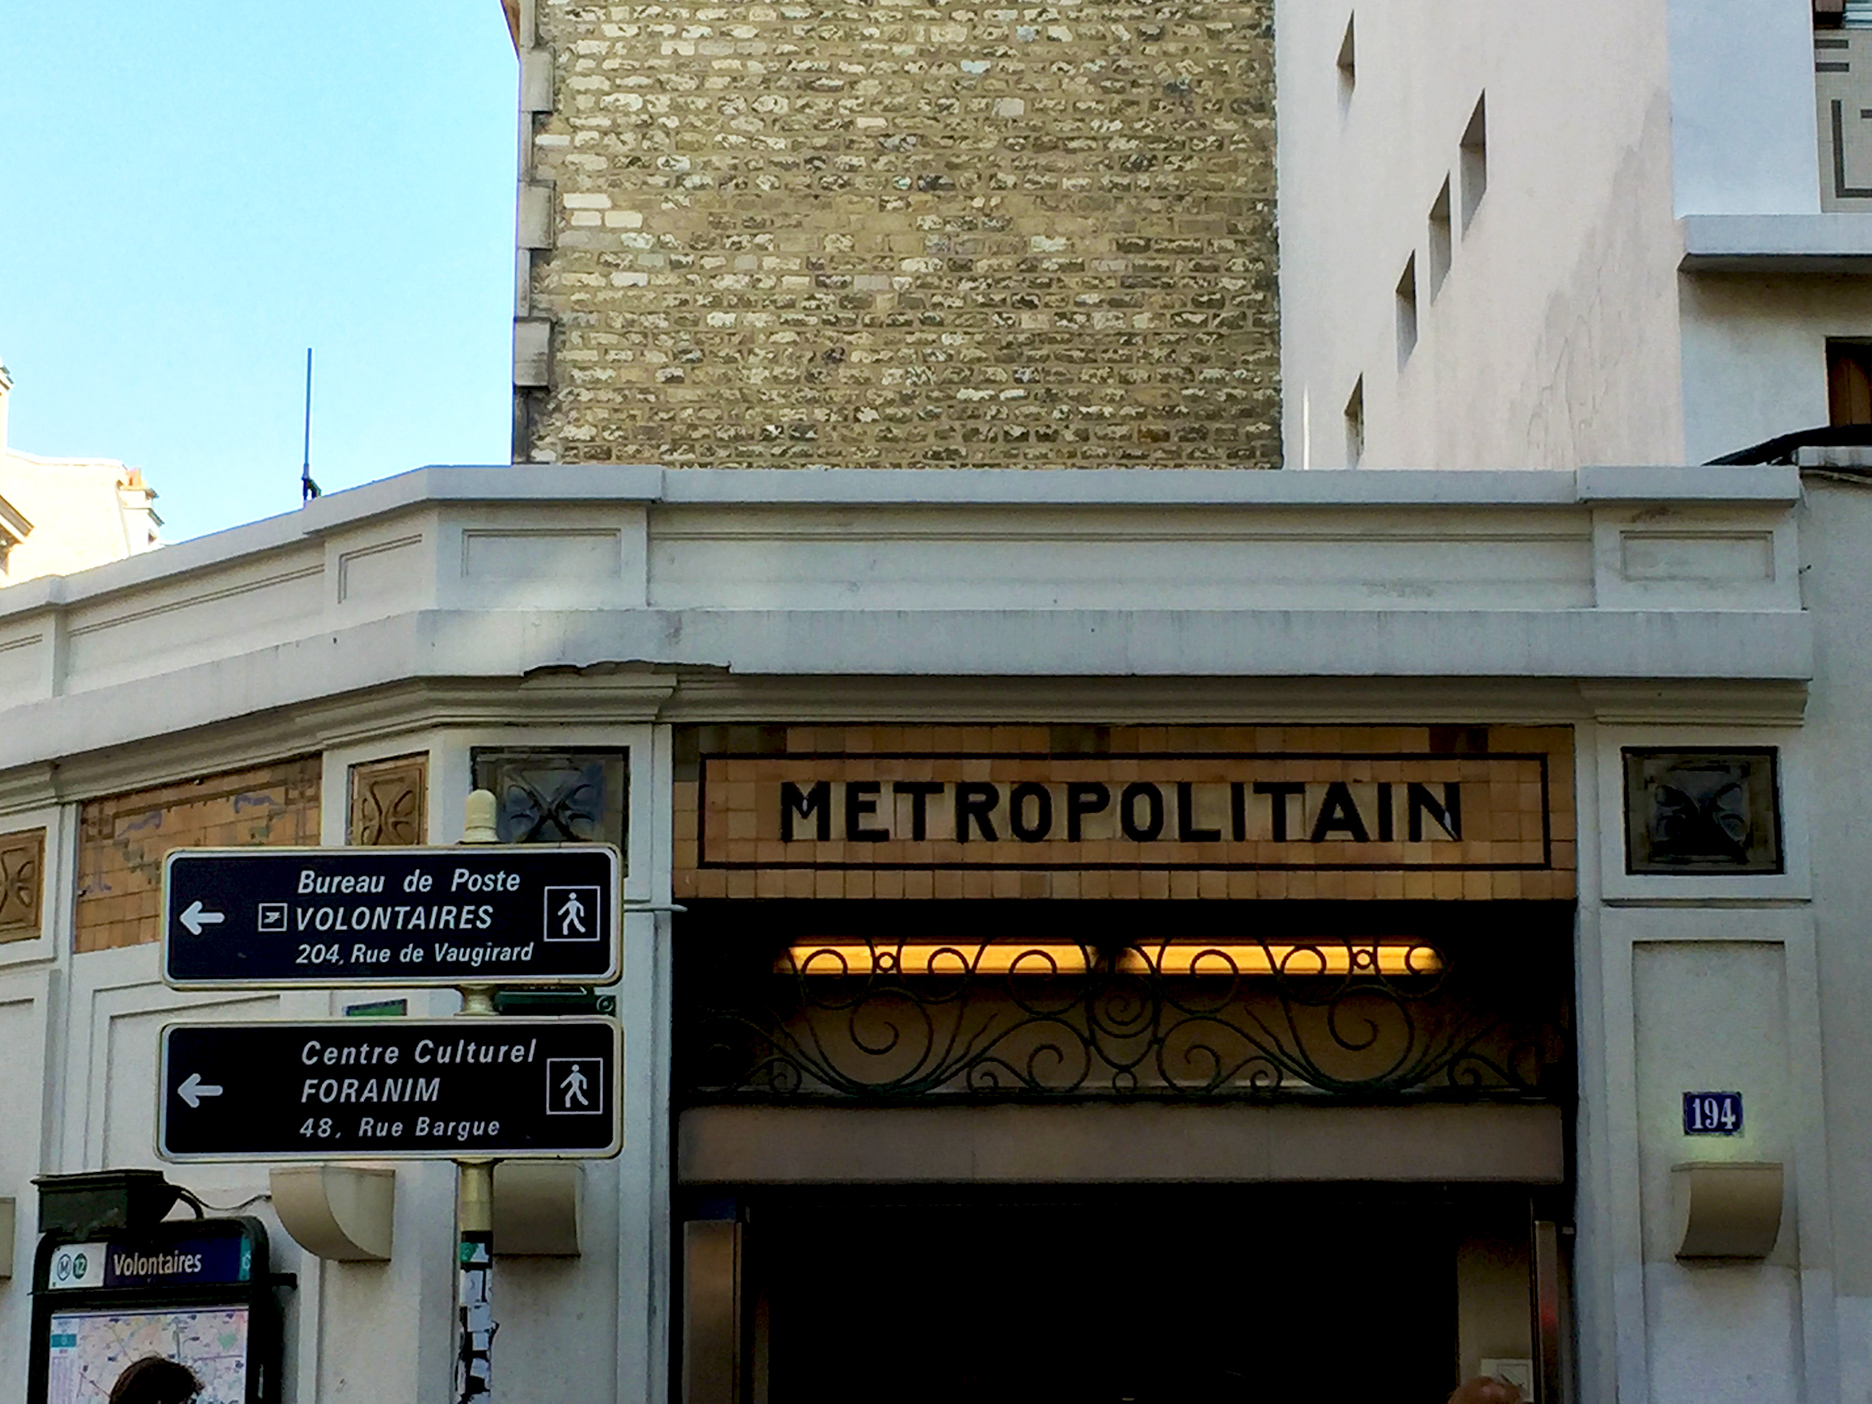 Station Volontaires in the 15th arrondissement opened in 1910. Truly one of a kind.